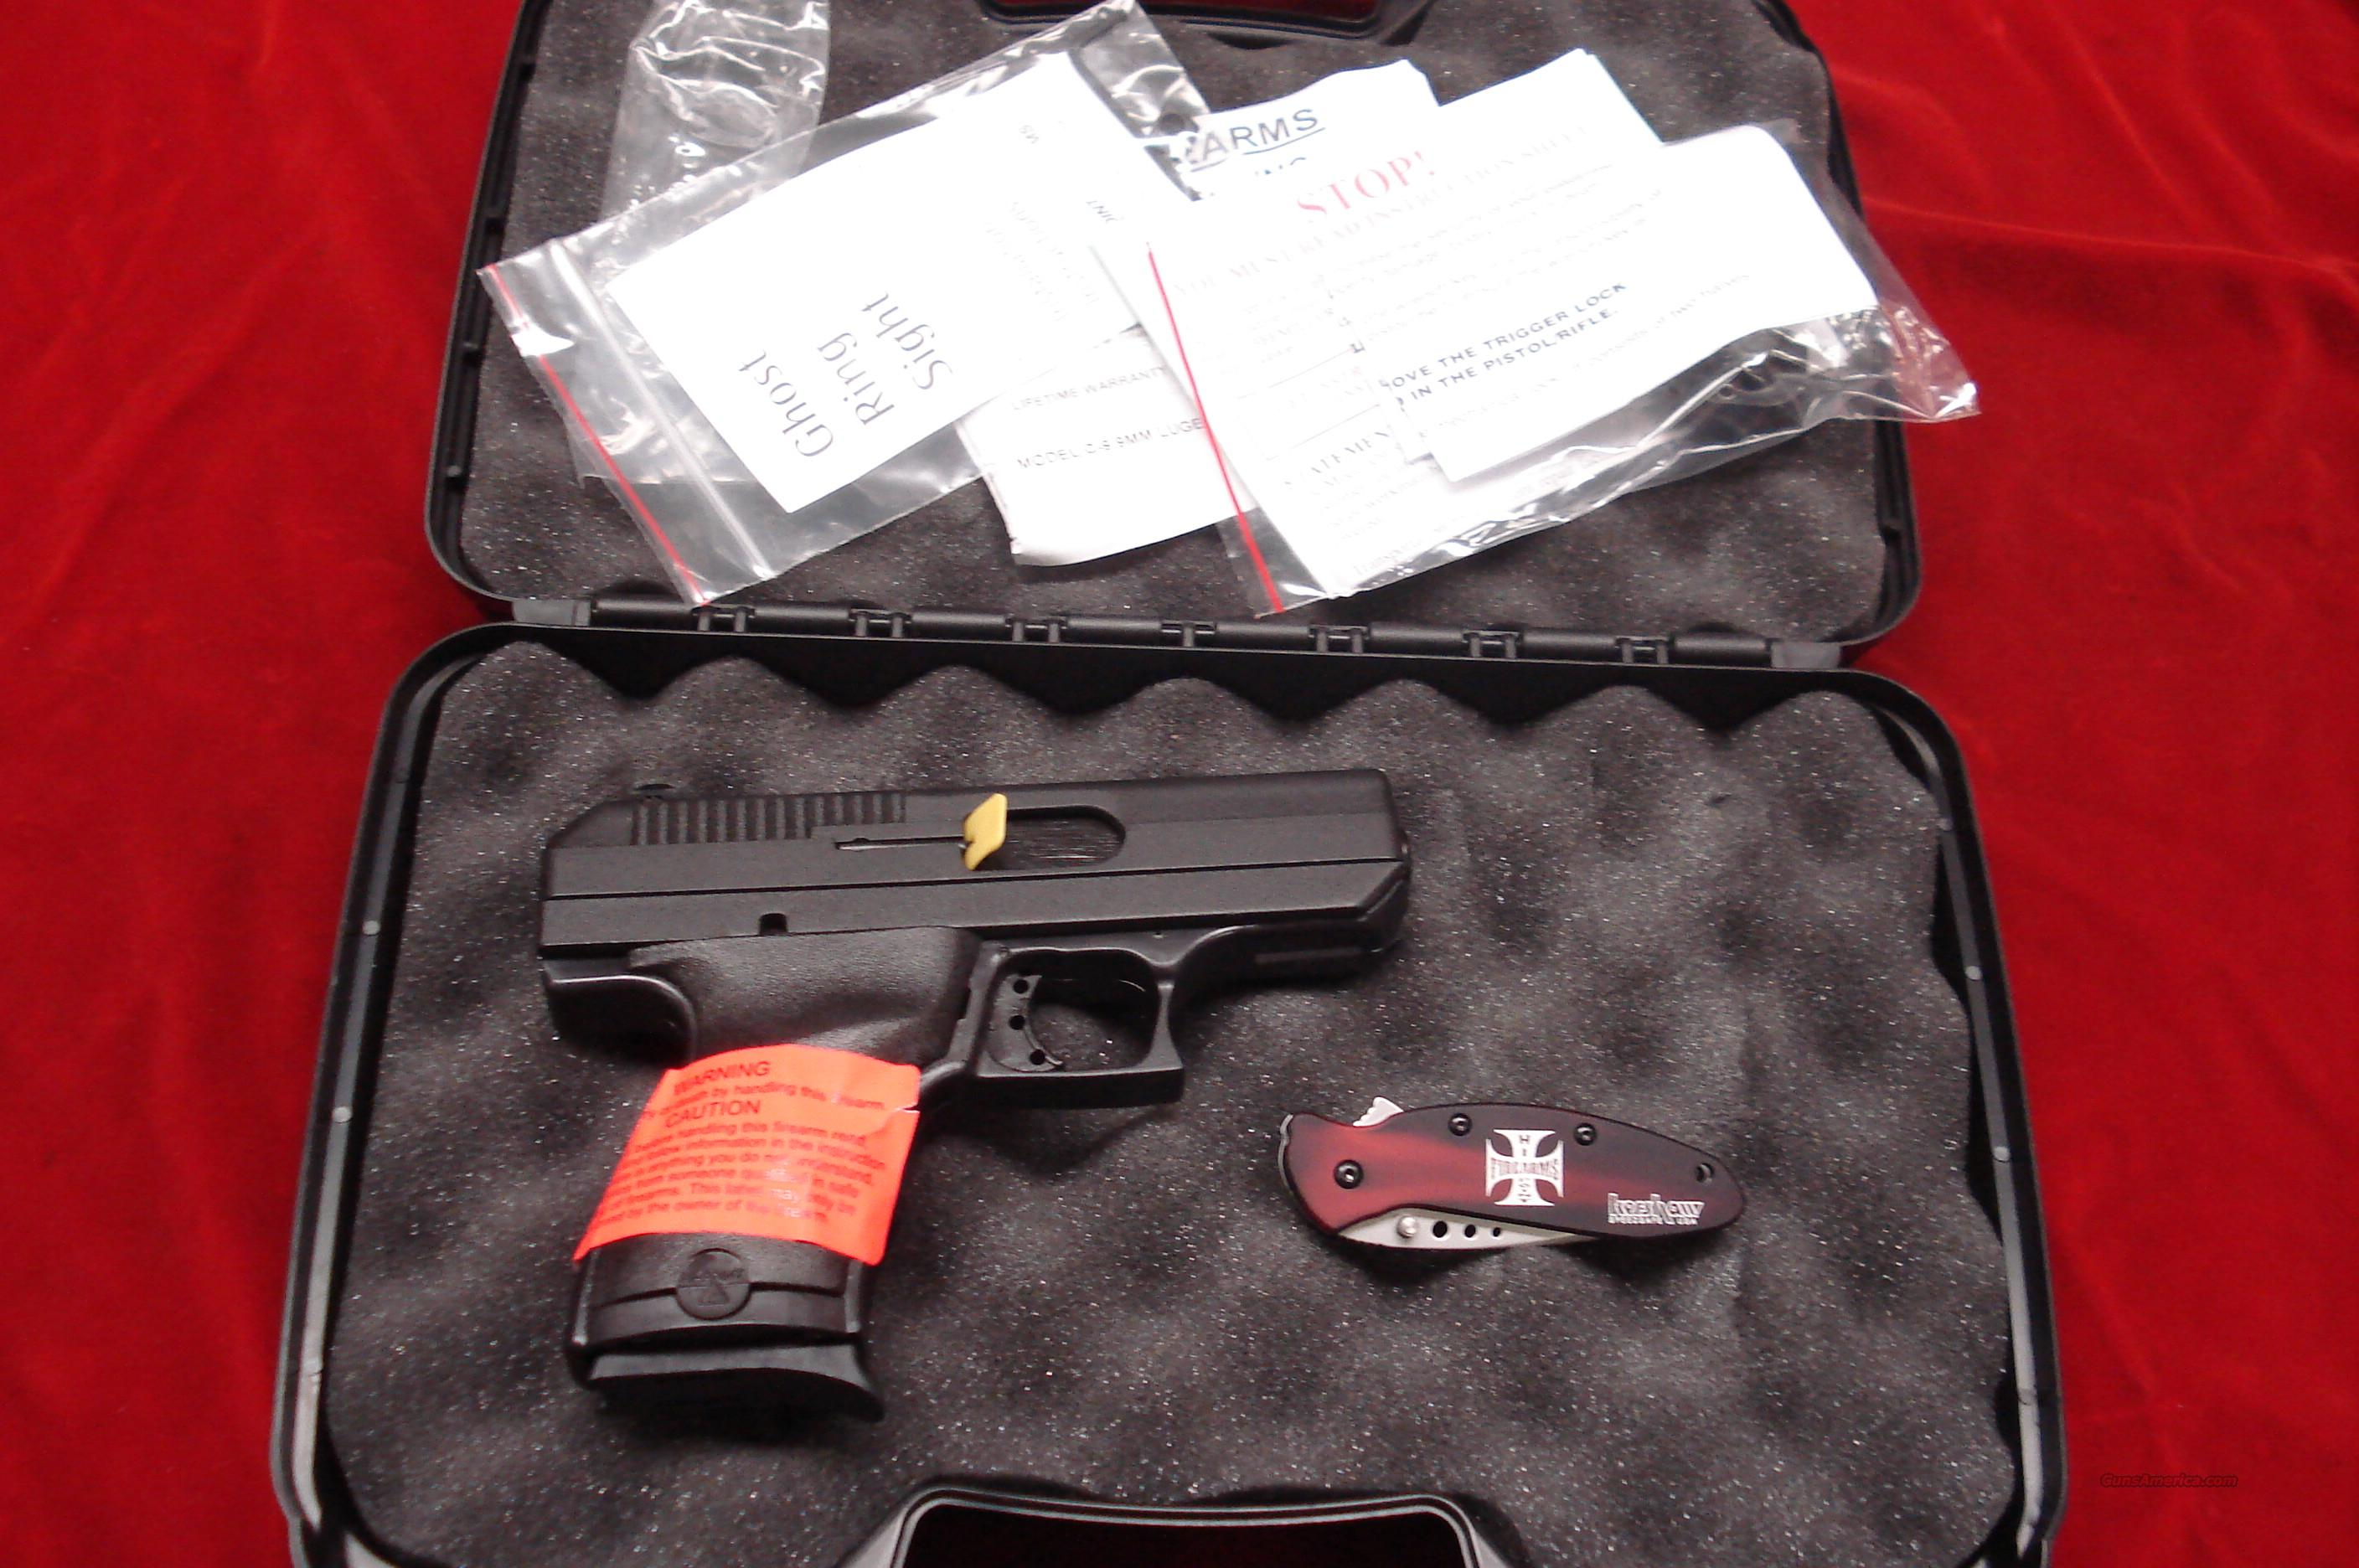 HI POINT 9MM COMPACT WITH KERSHAW KNIFE PACKAGE NEW IN THE BOX   Guns > Pistols > Hi Point Pistols